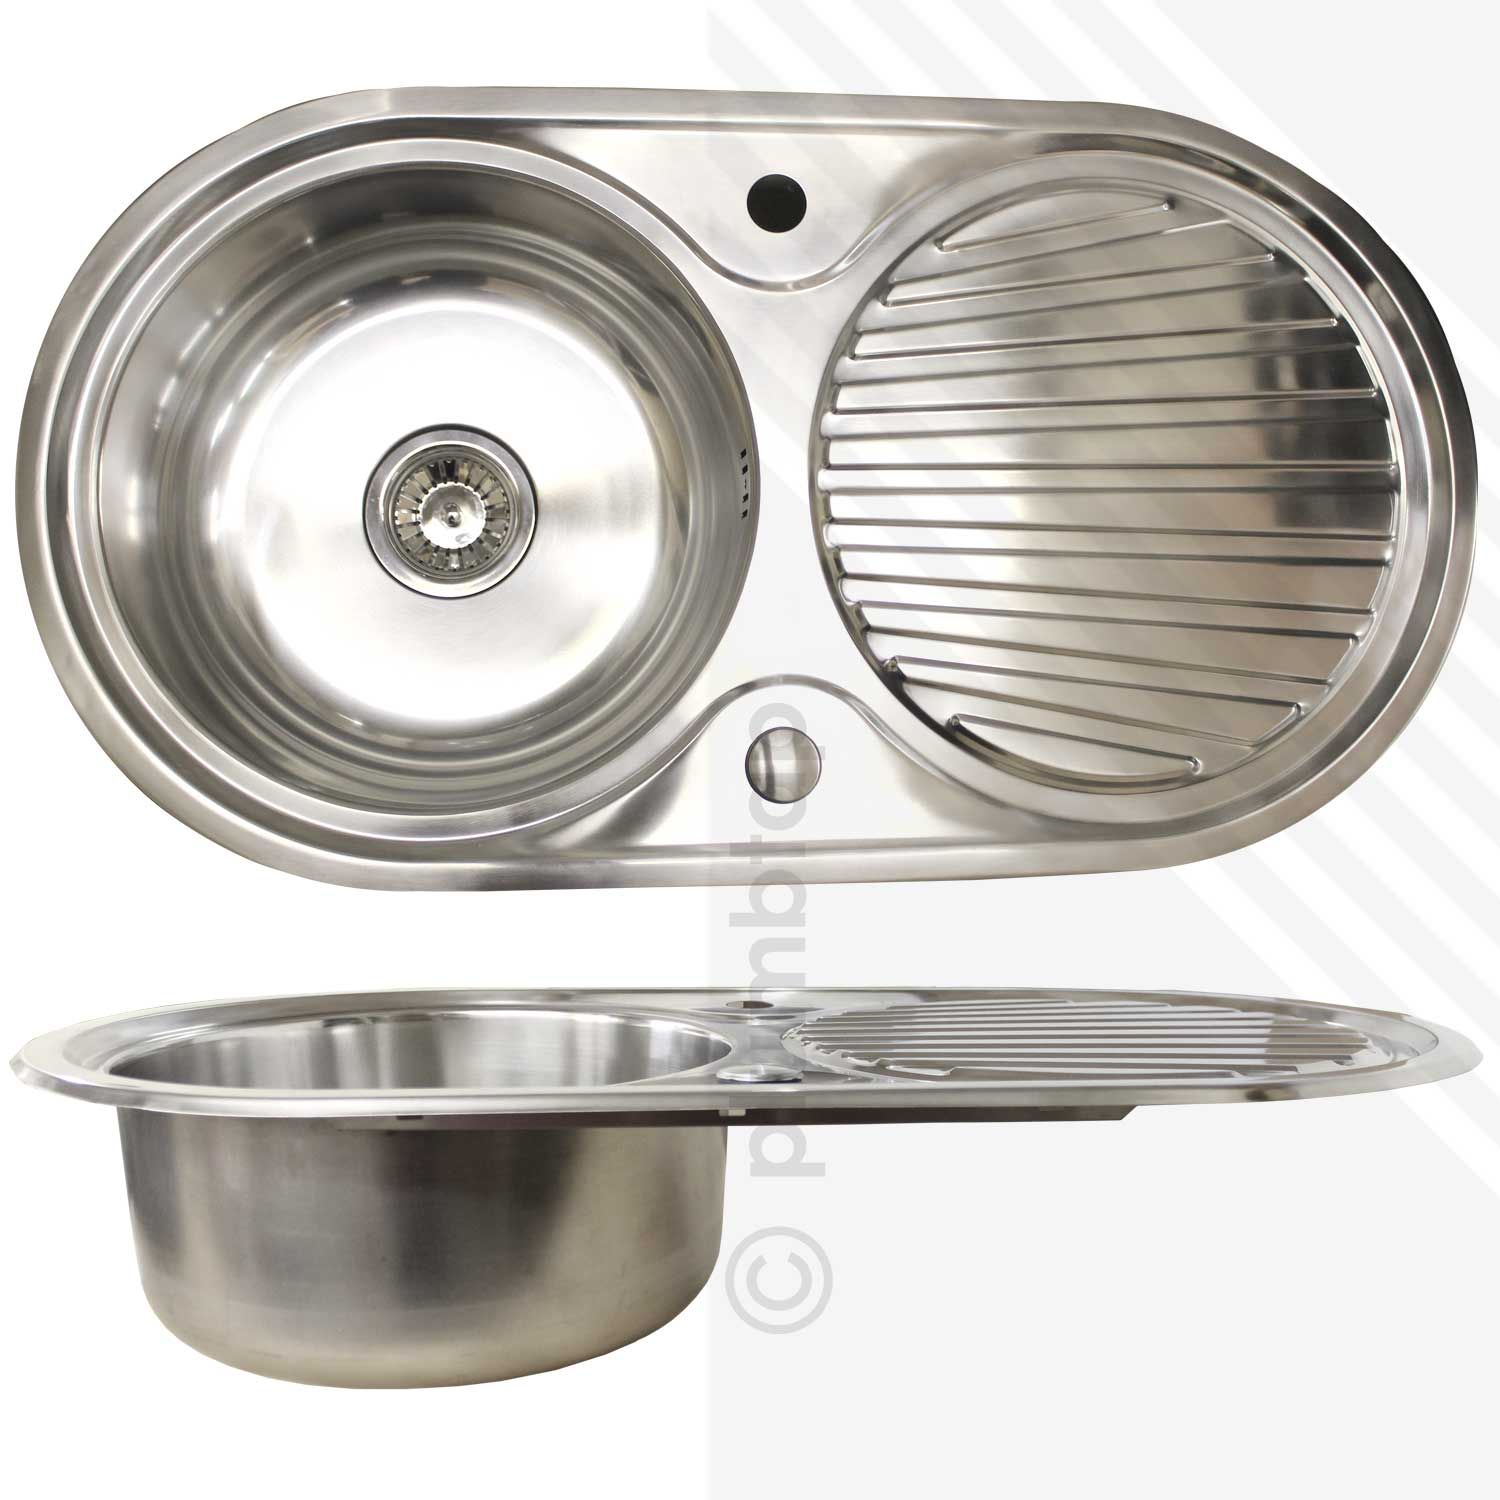 single bowl 10 stainless steel inset kitchen sink round reversible waste clips - Kitchen Sink Round